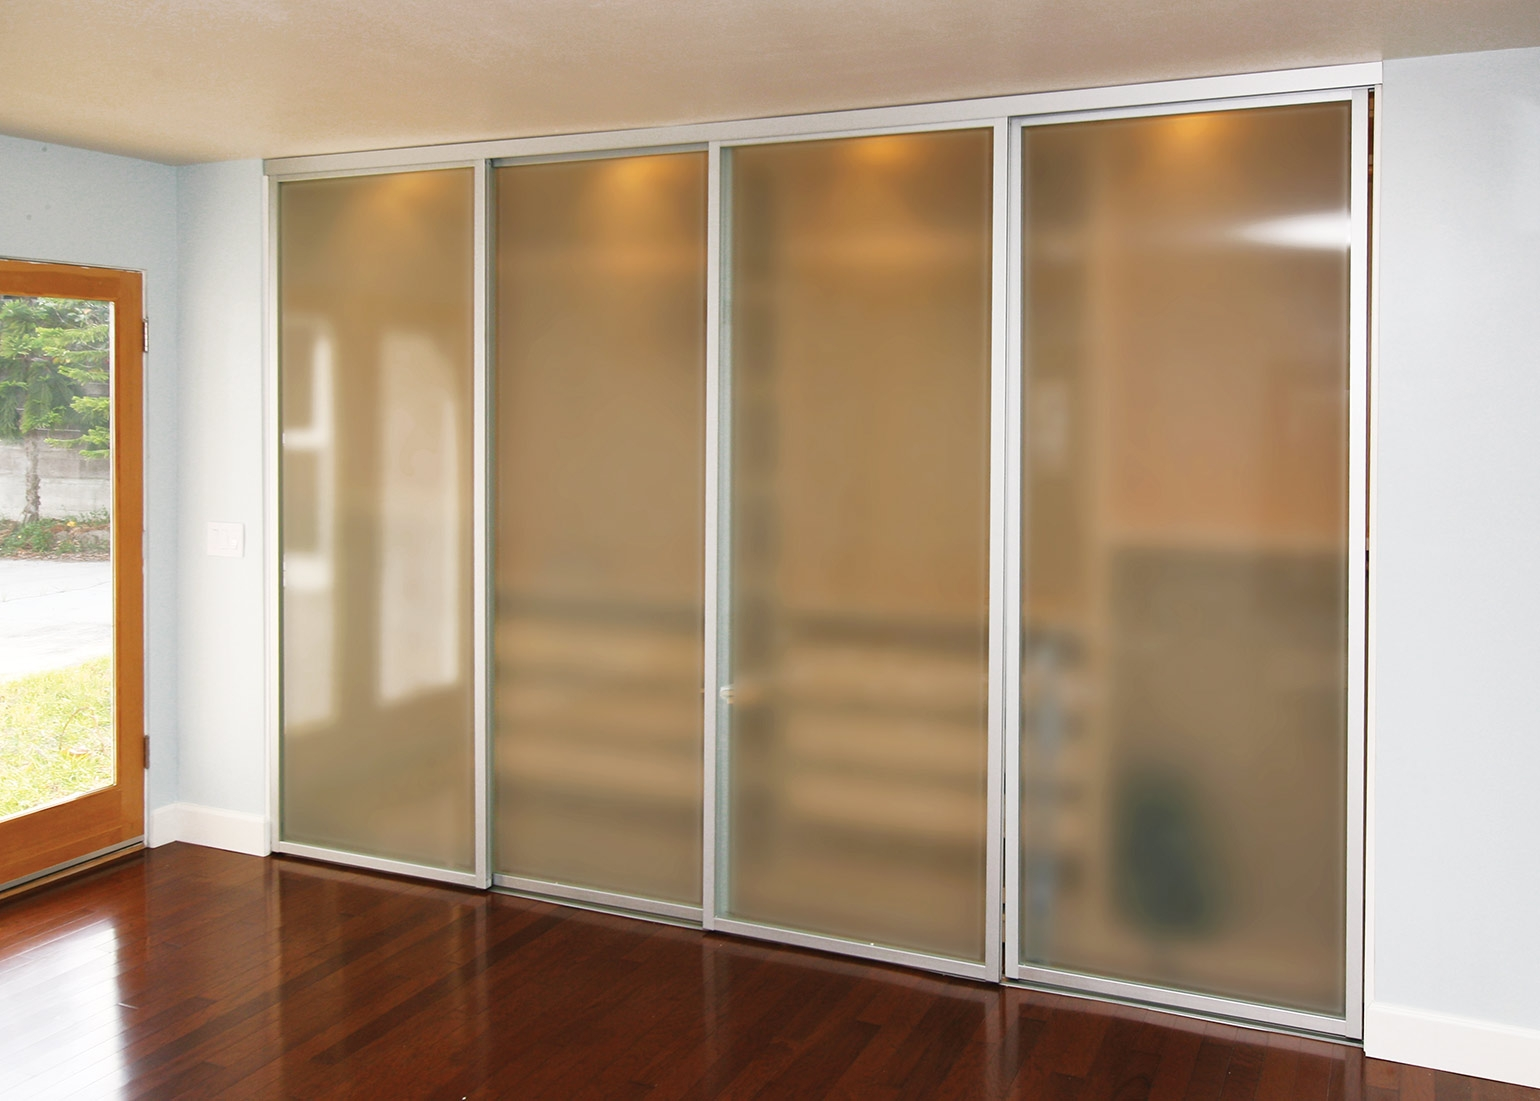 Permalink to Sliding Closet Doors With Frosted Glass